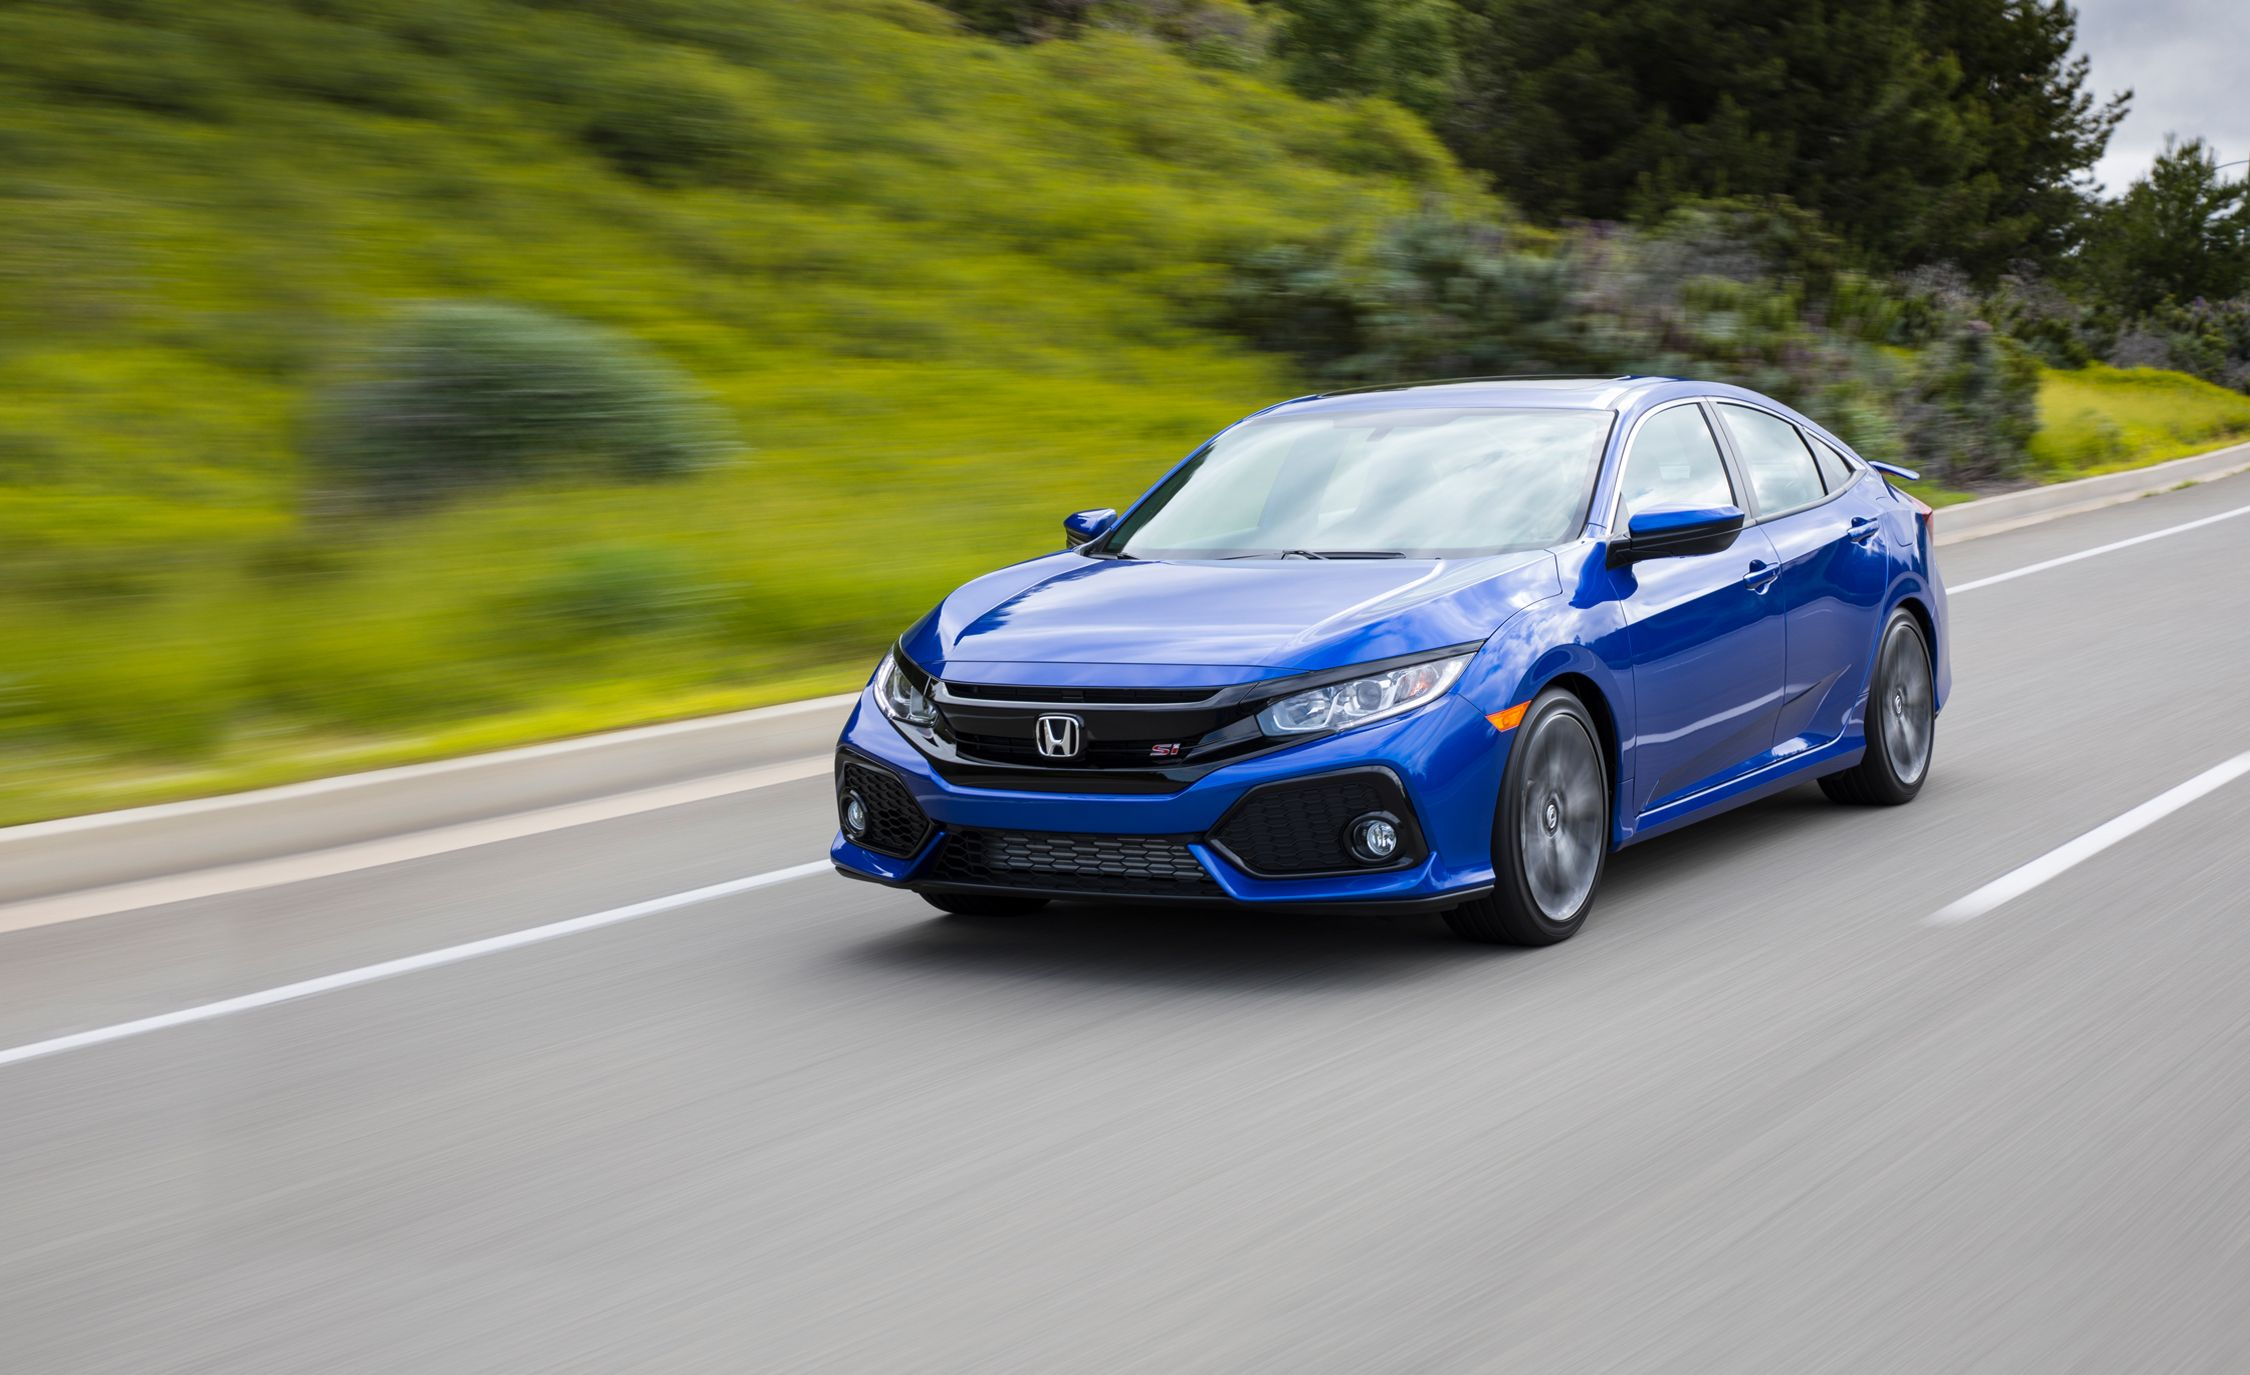 2017 Honda Civic Si First Drive Review Car And Driver